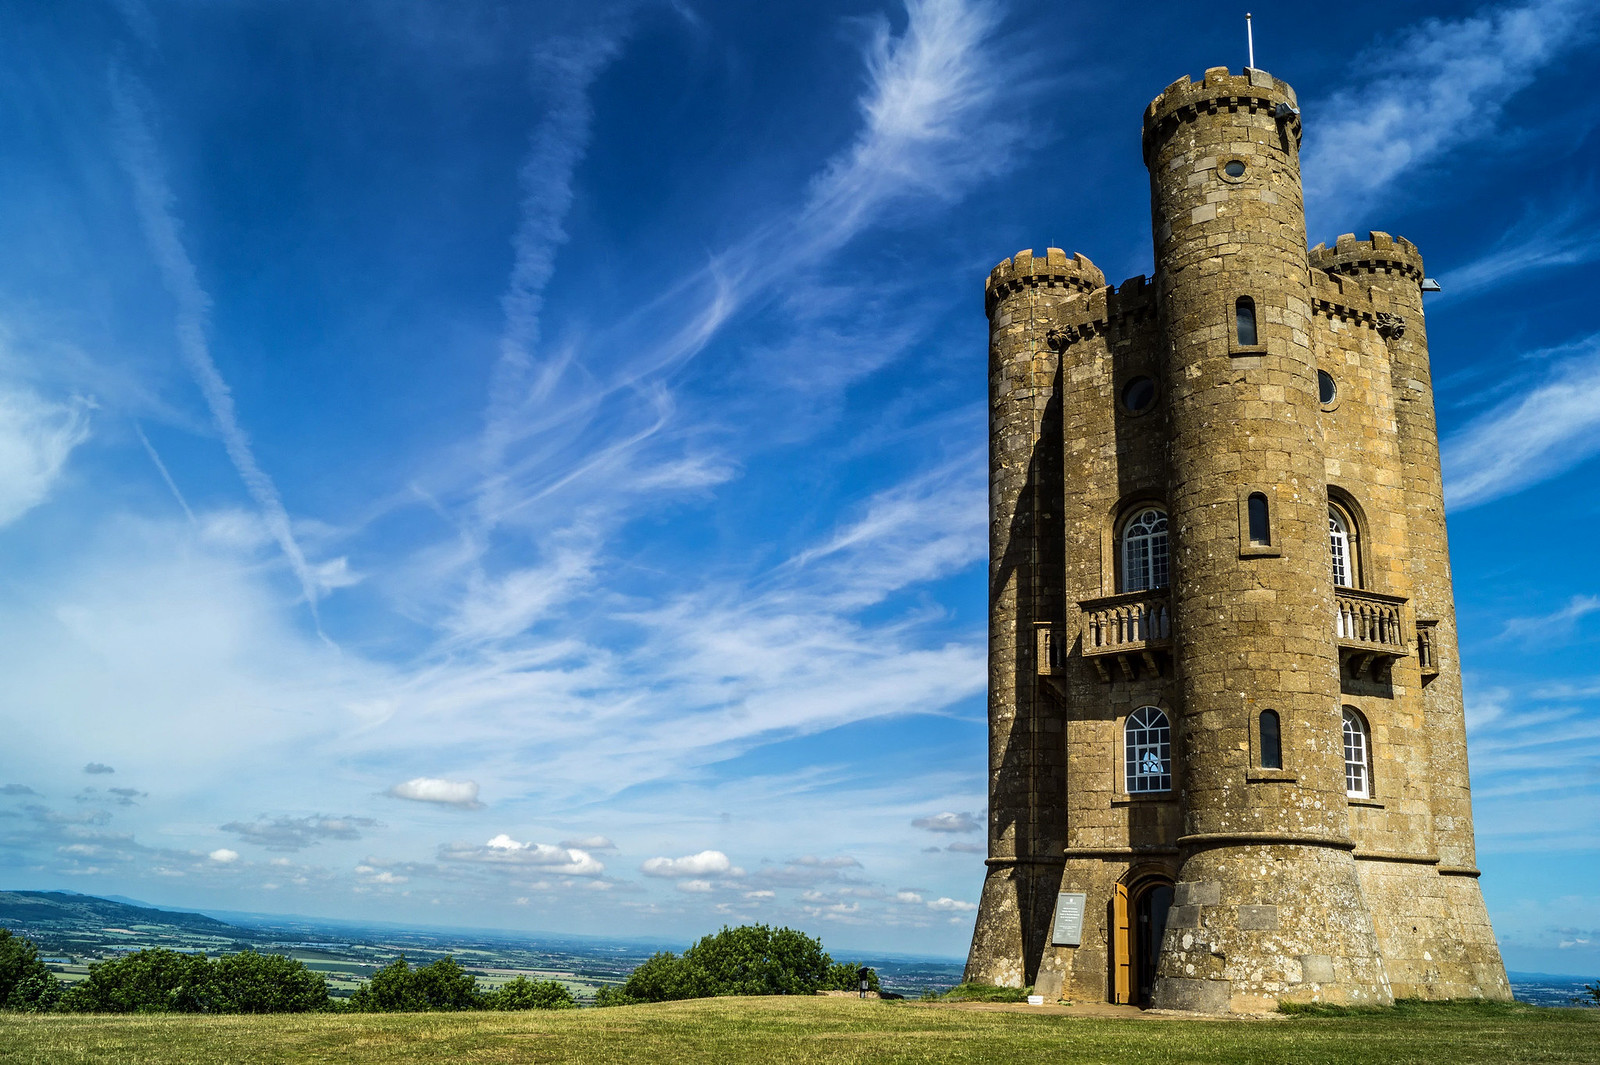 Broadway Tower. Credit Phil Dolby